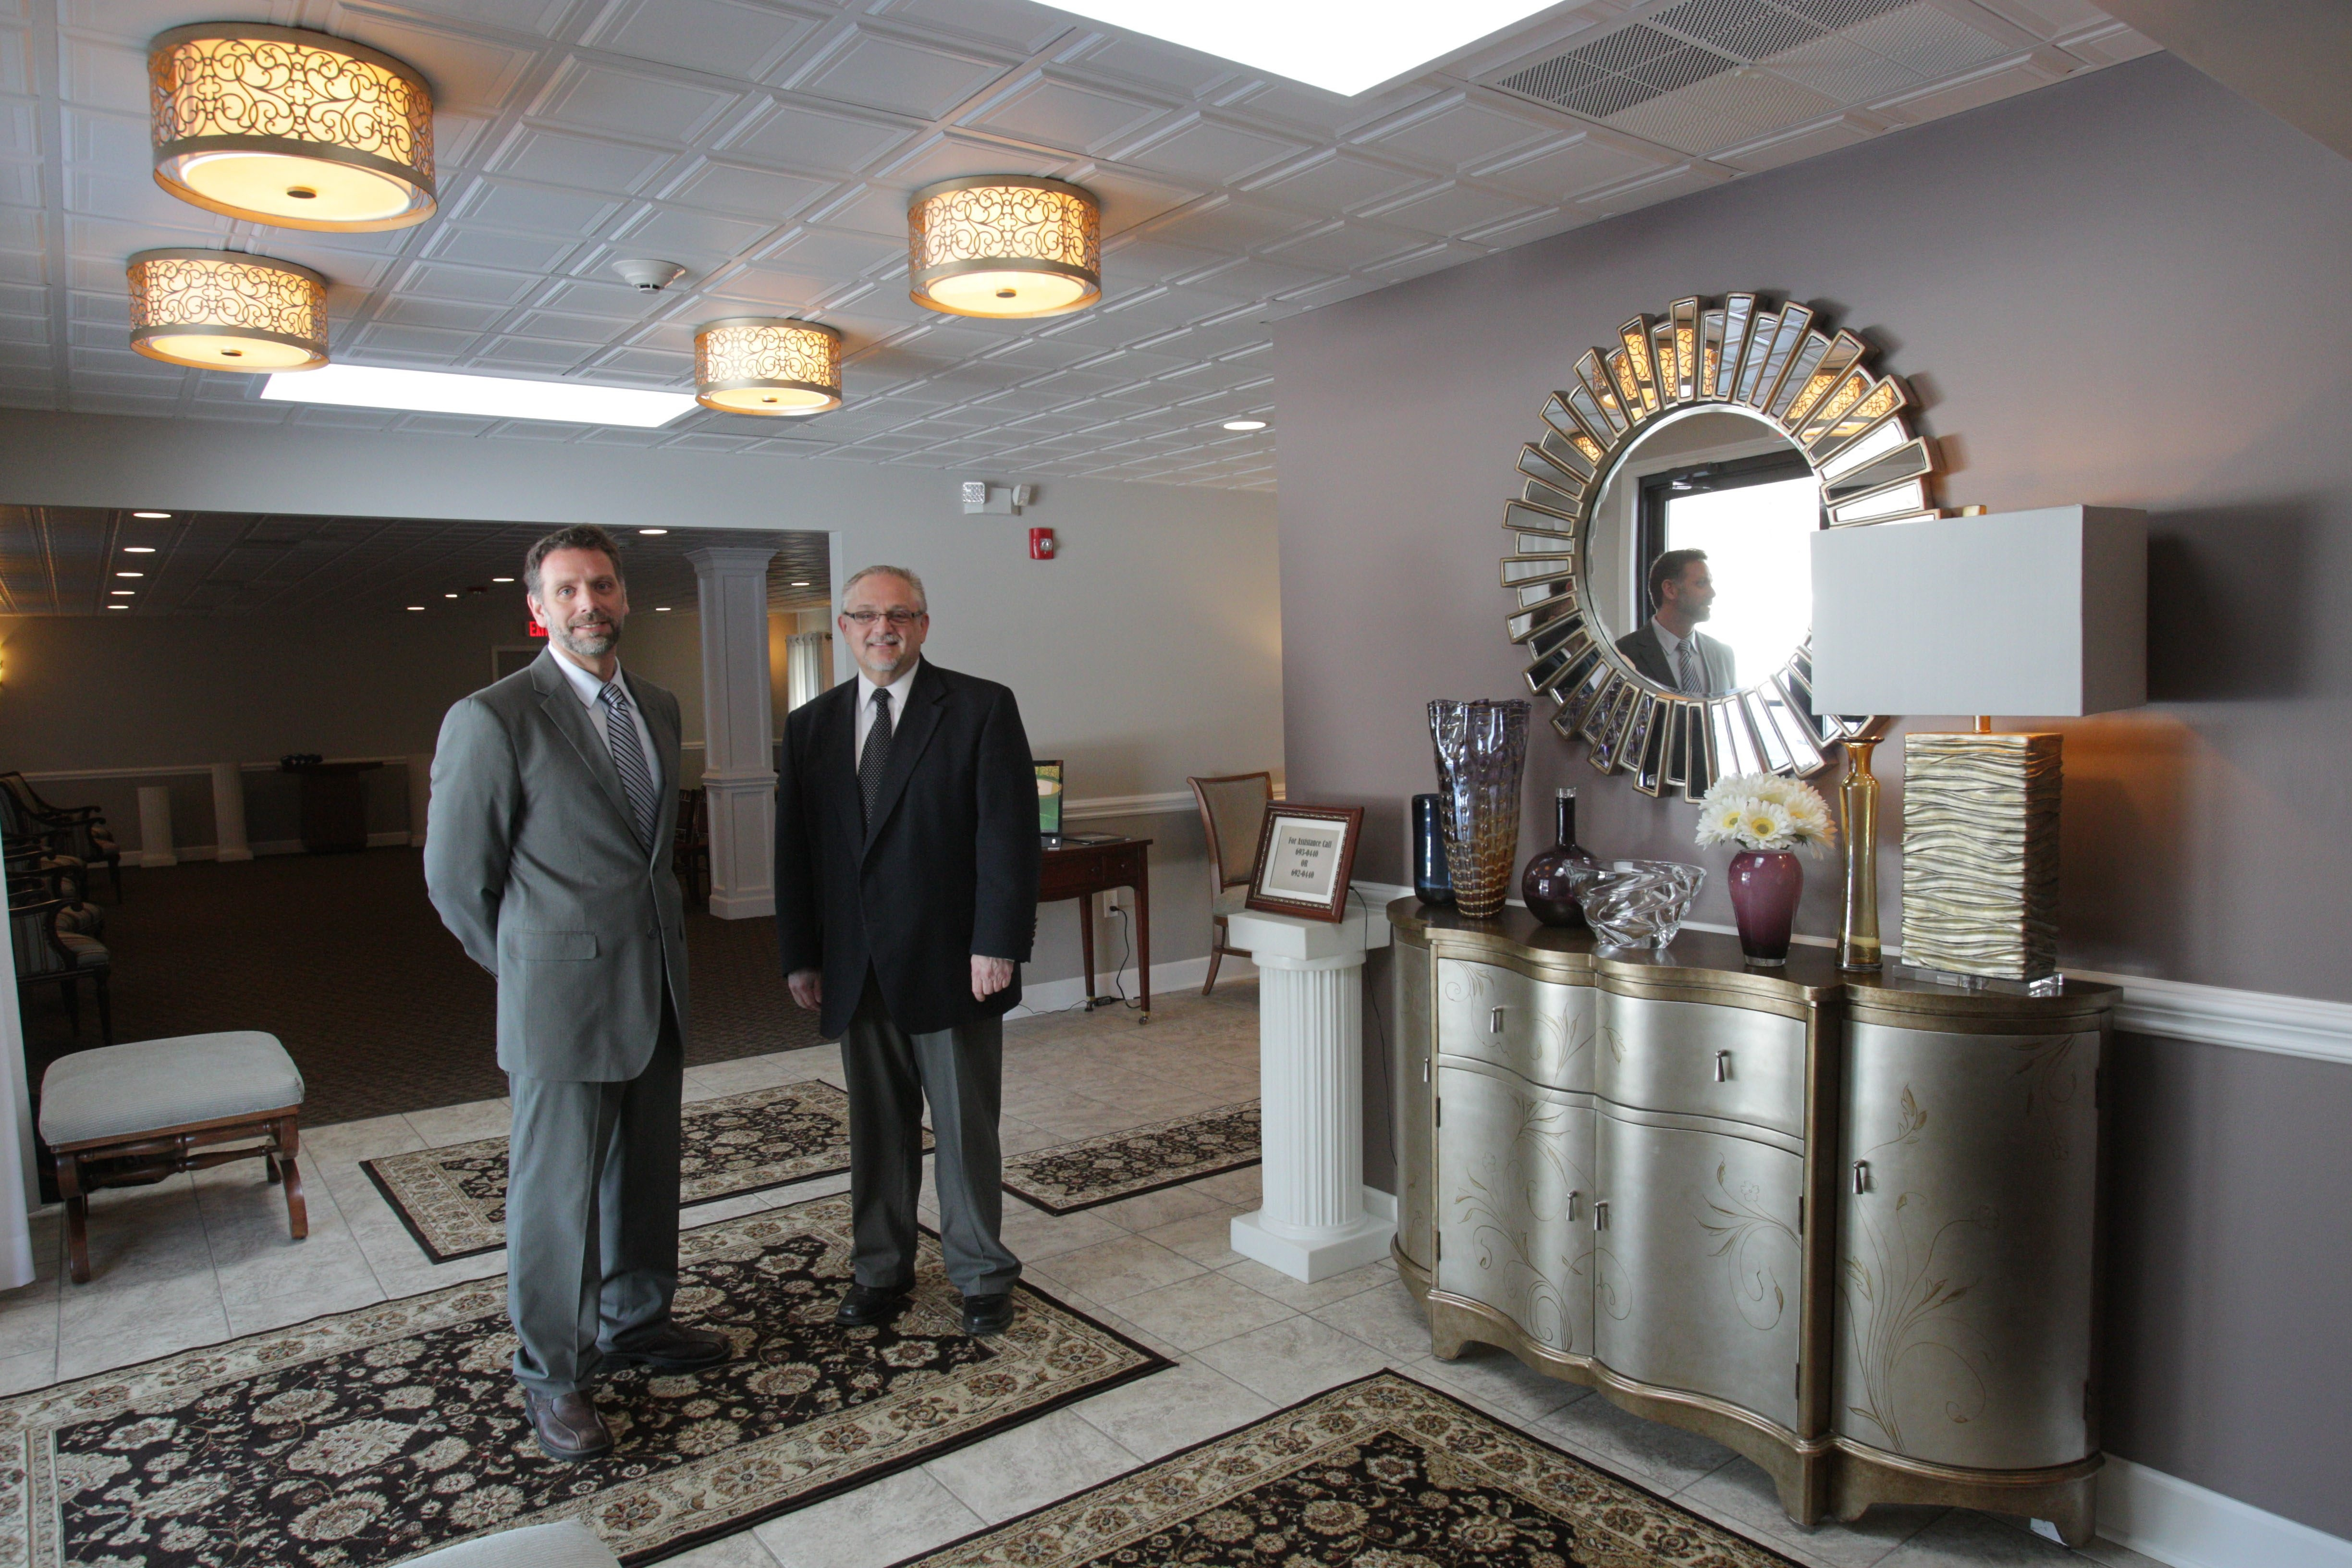 Wattengel Funeral Home directors Joseph V. Mantione, left, and Gregory M. Wood attend to details in foyer at newly opened second location on Meadow Drive in North Tonawanda. Grand opening is set for March 23.